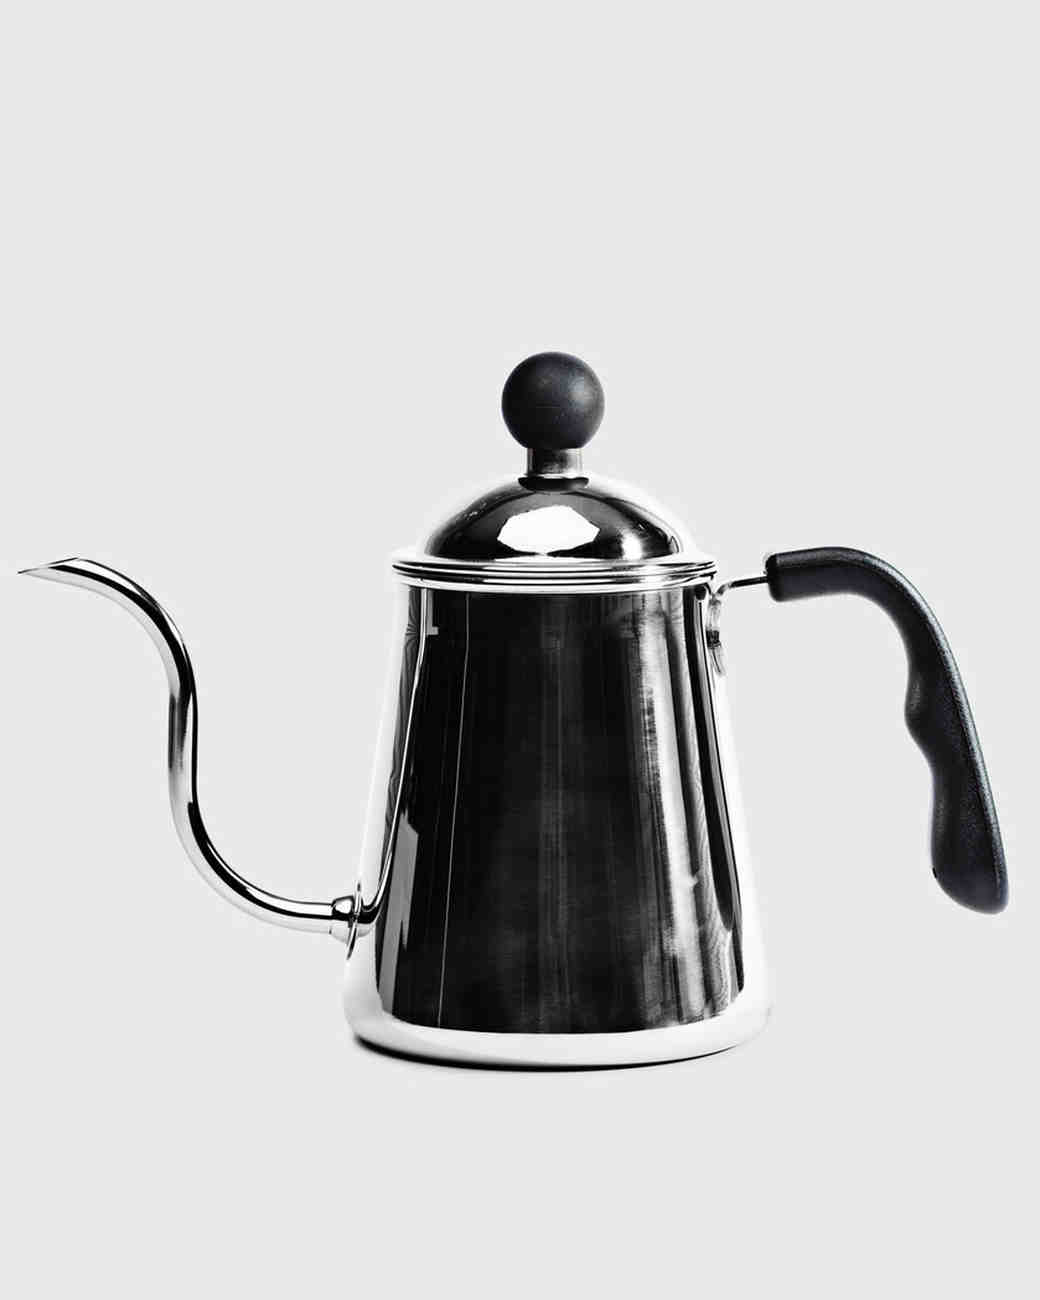 coffee-gift-guide-level-kettle-1014.jpg